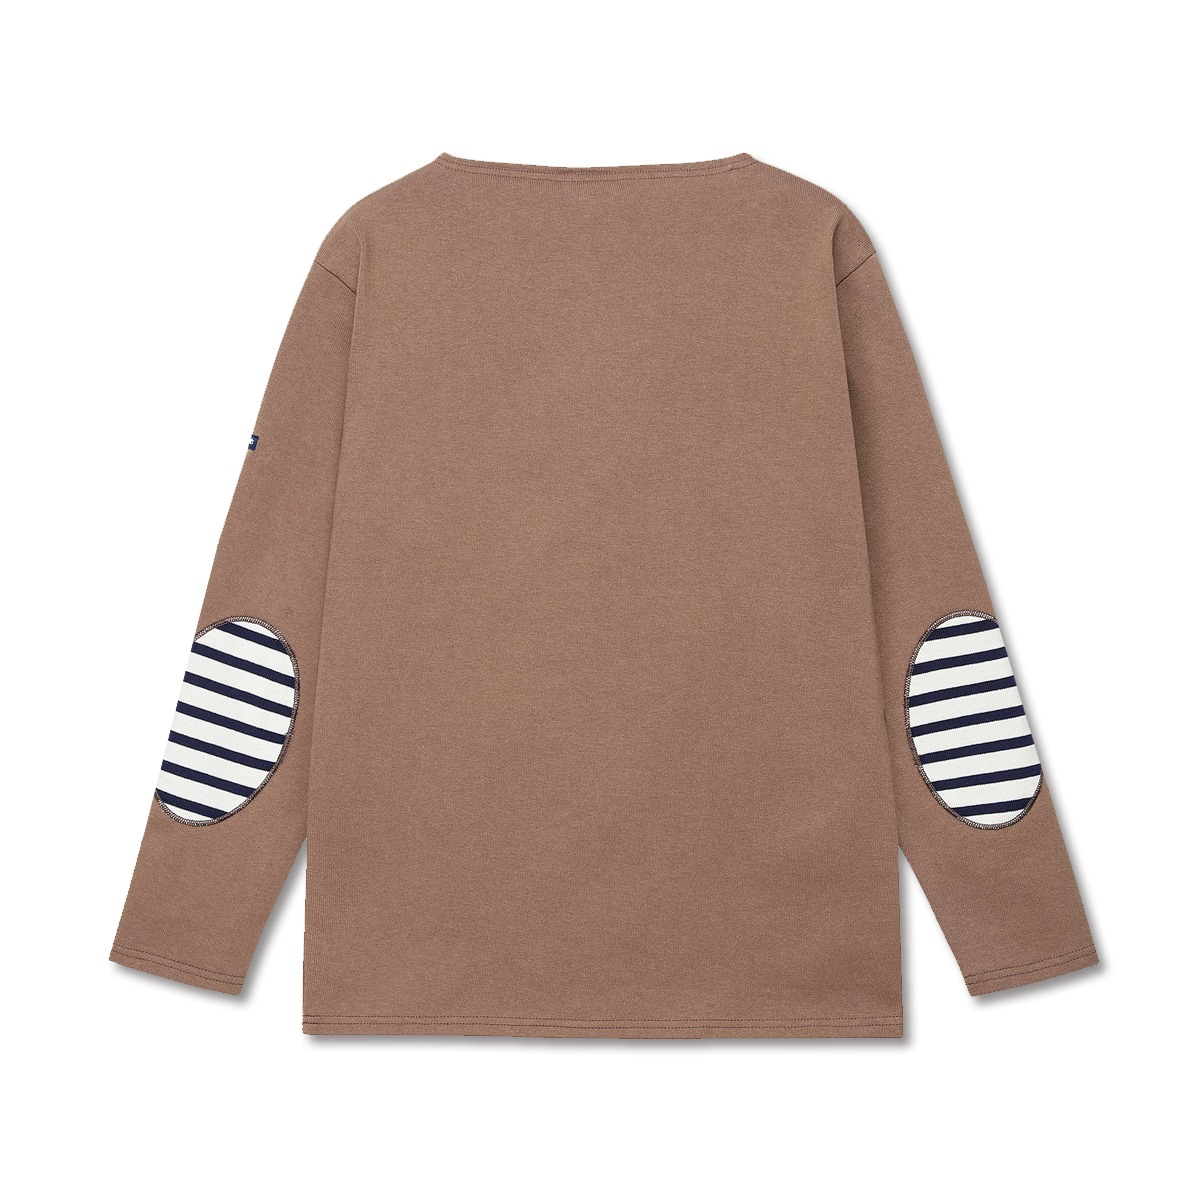 [SAINT JAMES]  GUILDO U ELBOW PATCH 'NOISETTE'